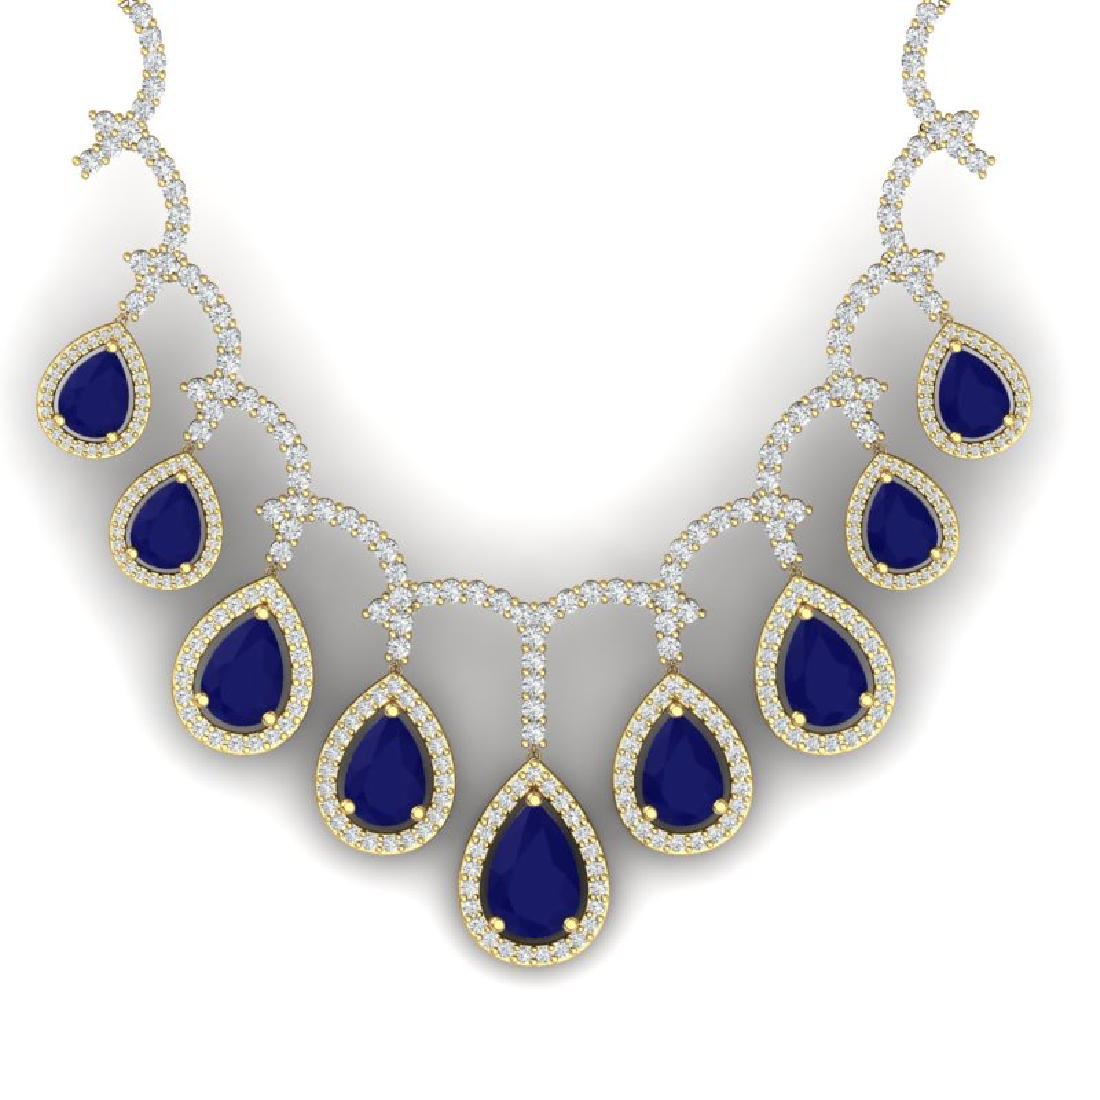 31.5 CTW Royalty Sapphire & VS Diamond Necklace 18K